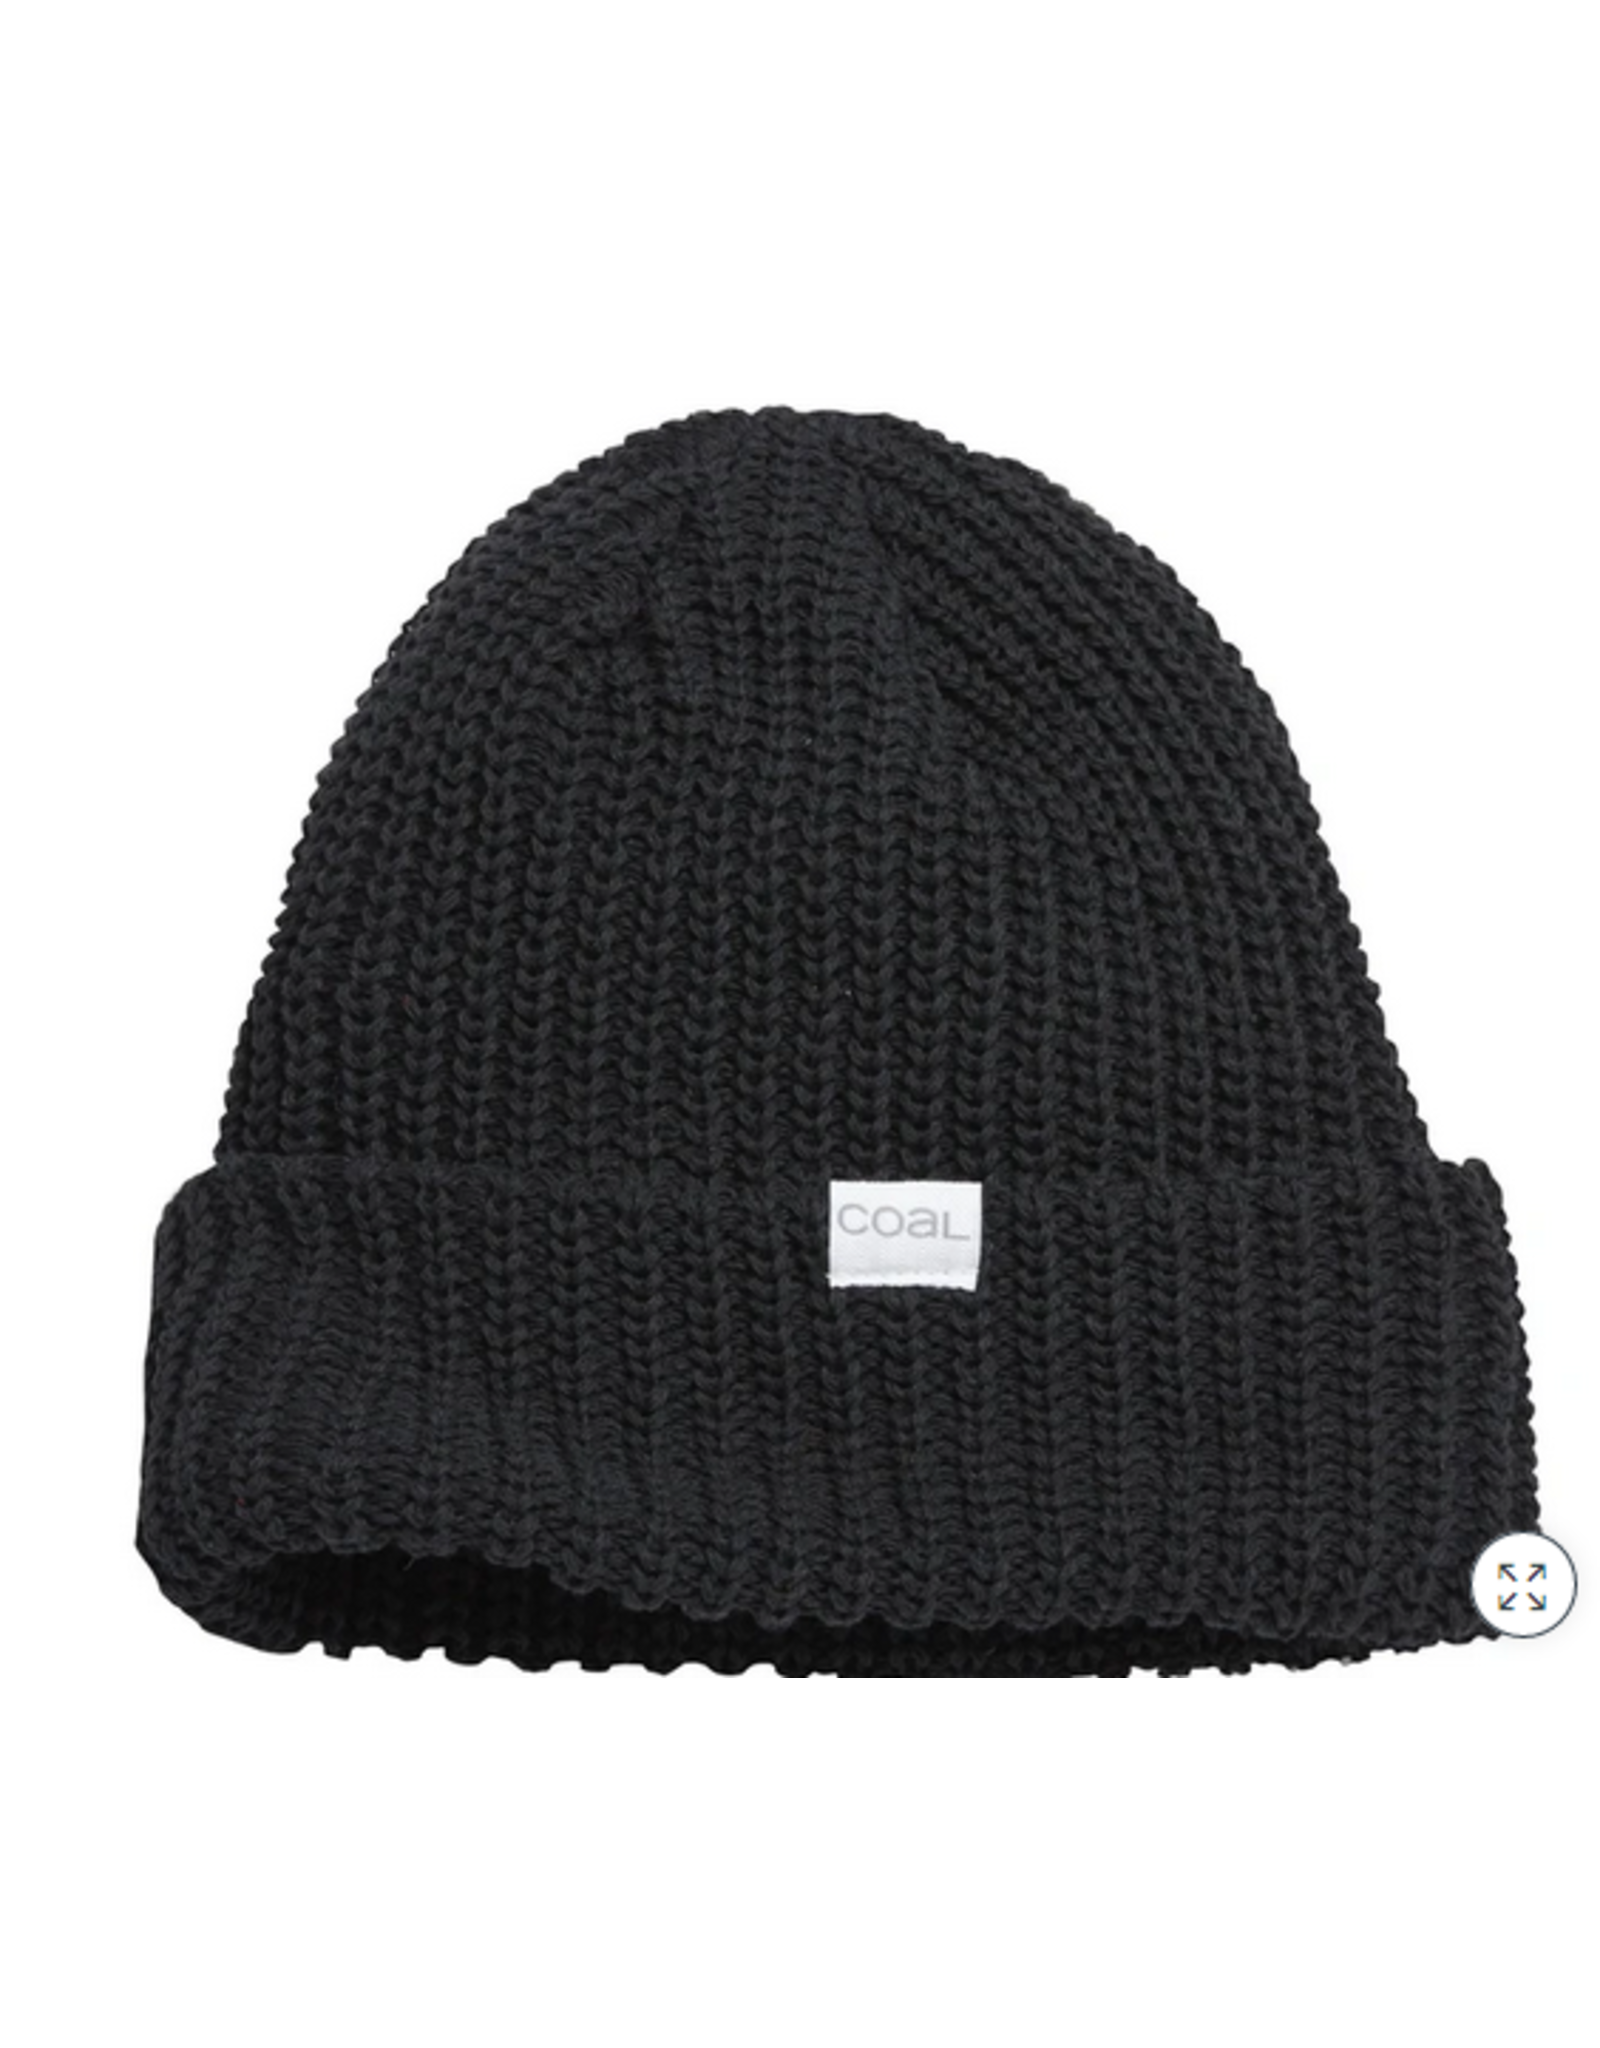 COAL COAL THE EDDIE BEANIE BLACK